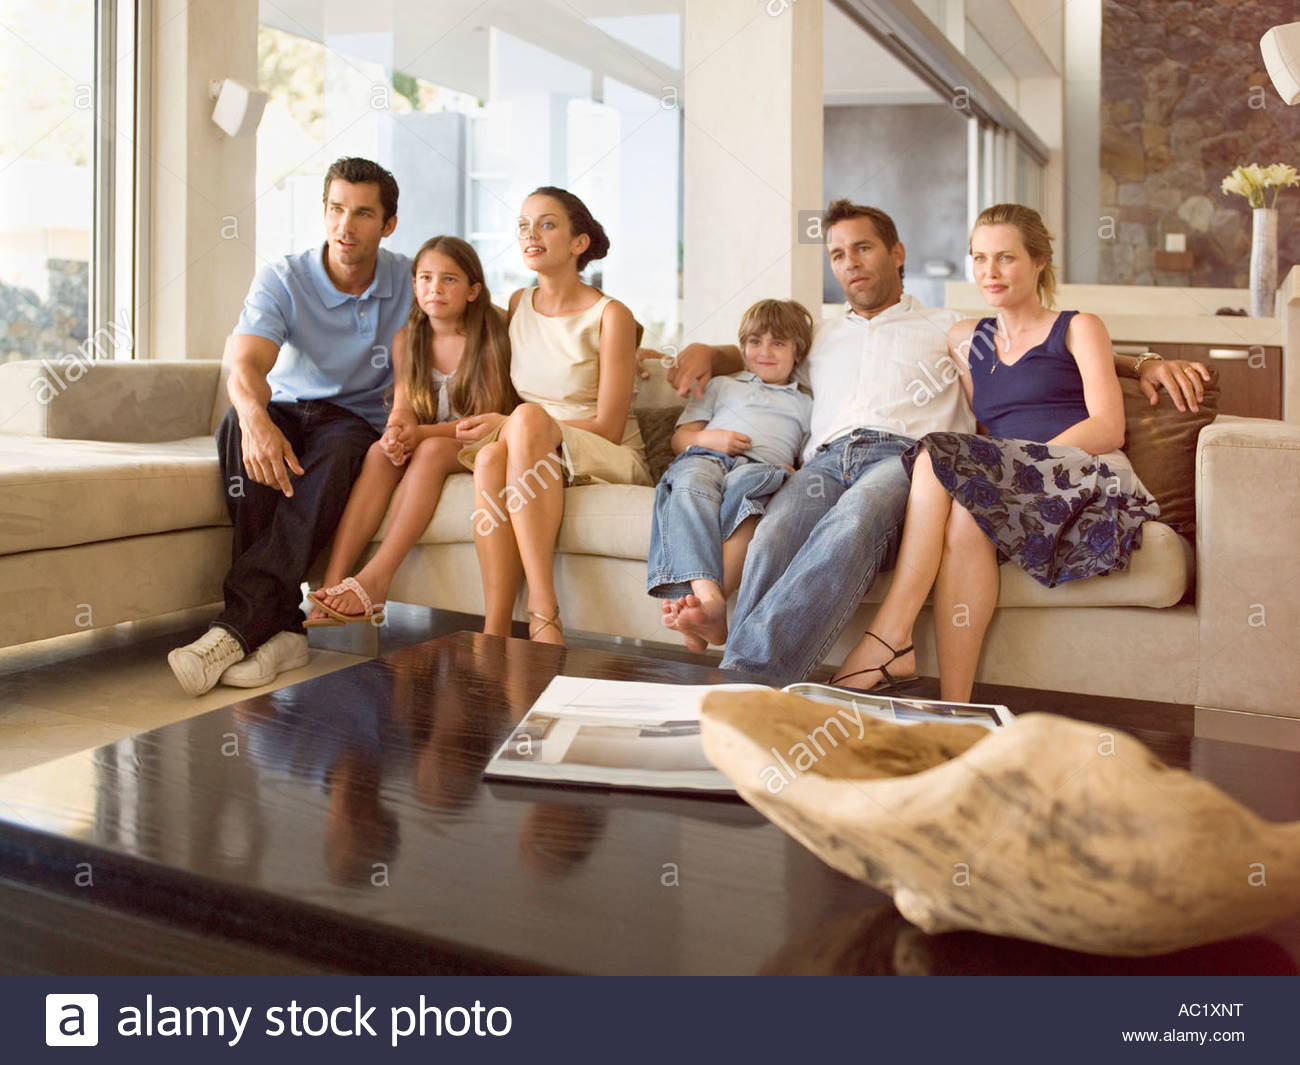 People watching tv stock photo royalty free image for People watching